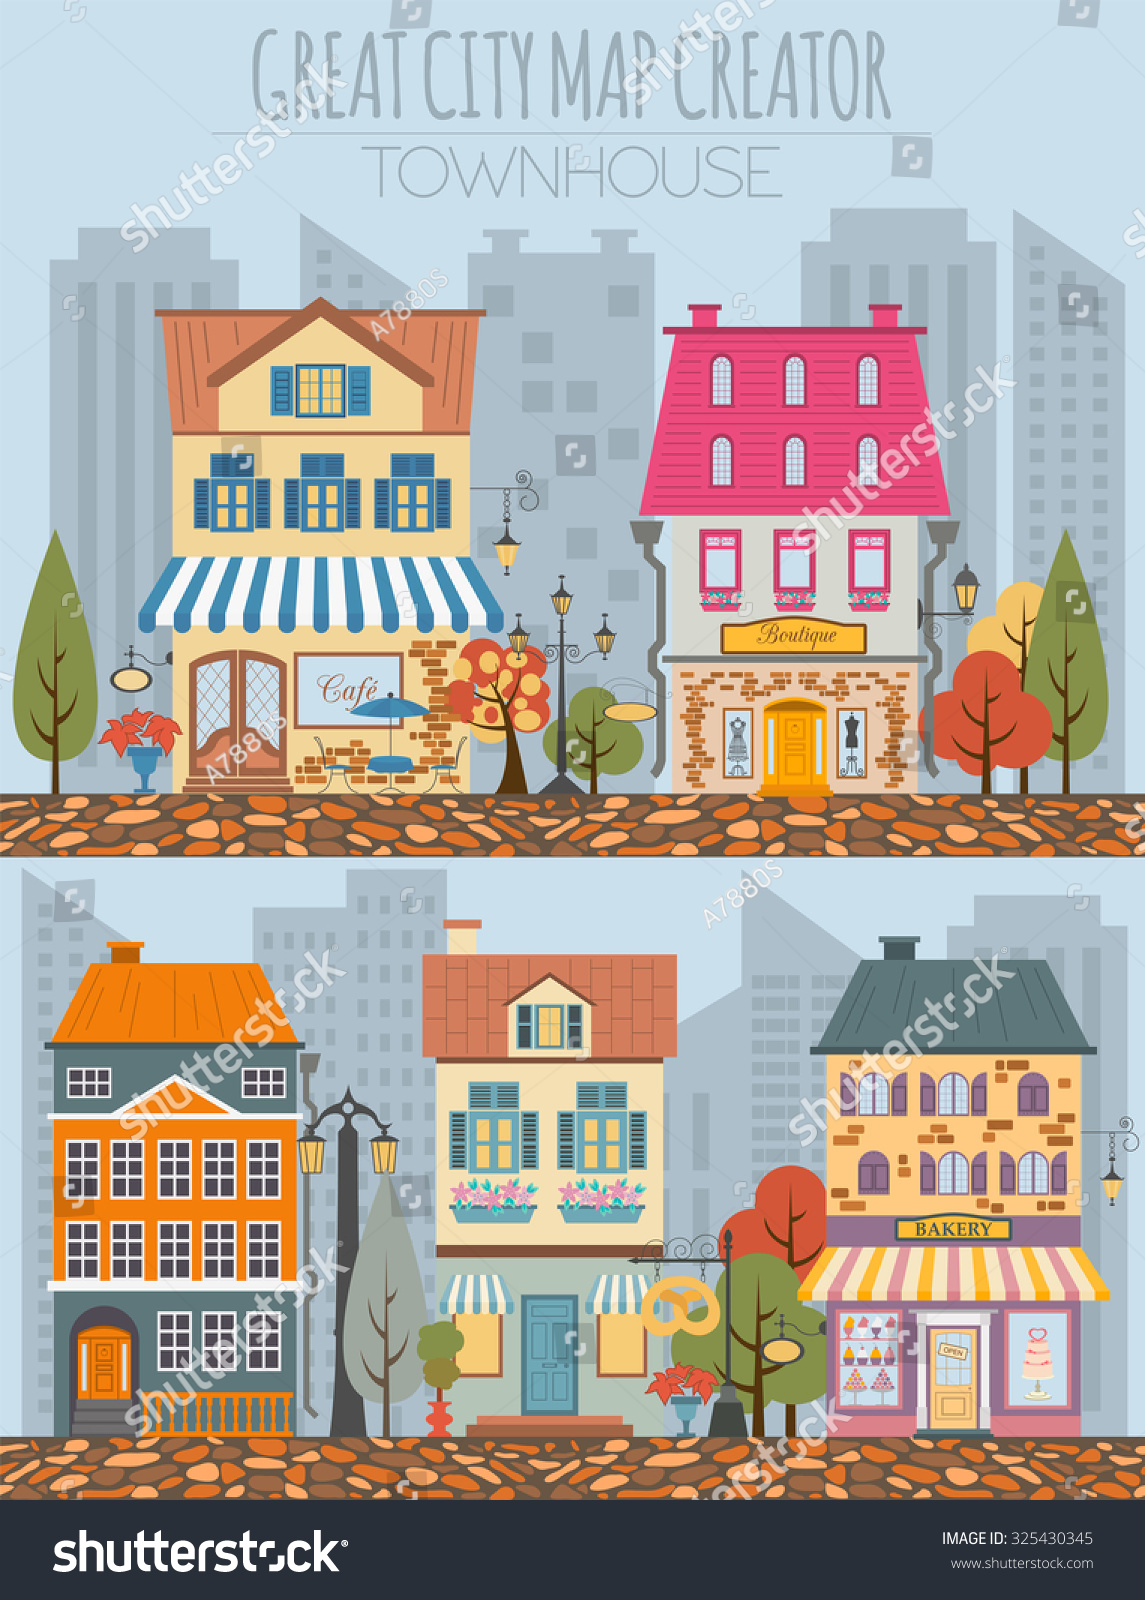 great city map creator house constructor house cafe restaurant shop - House Map Creator